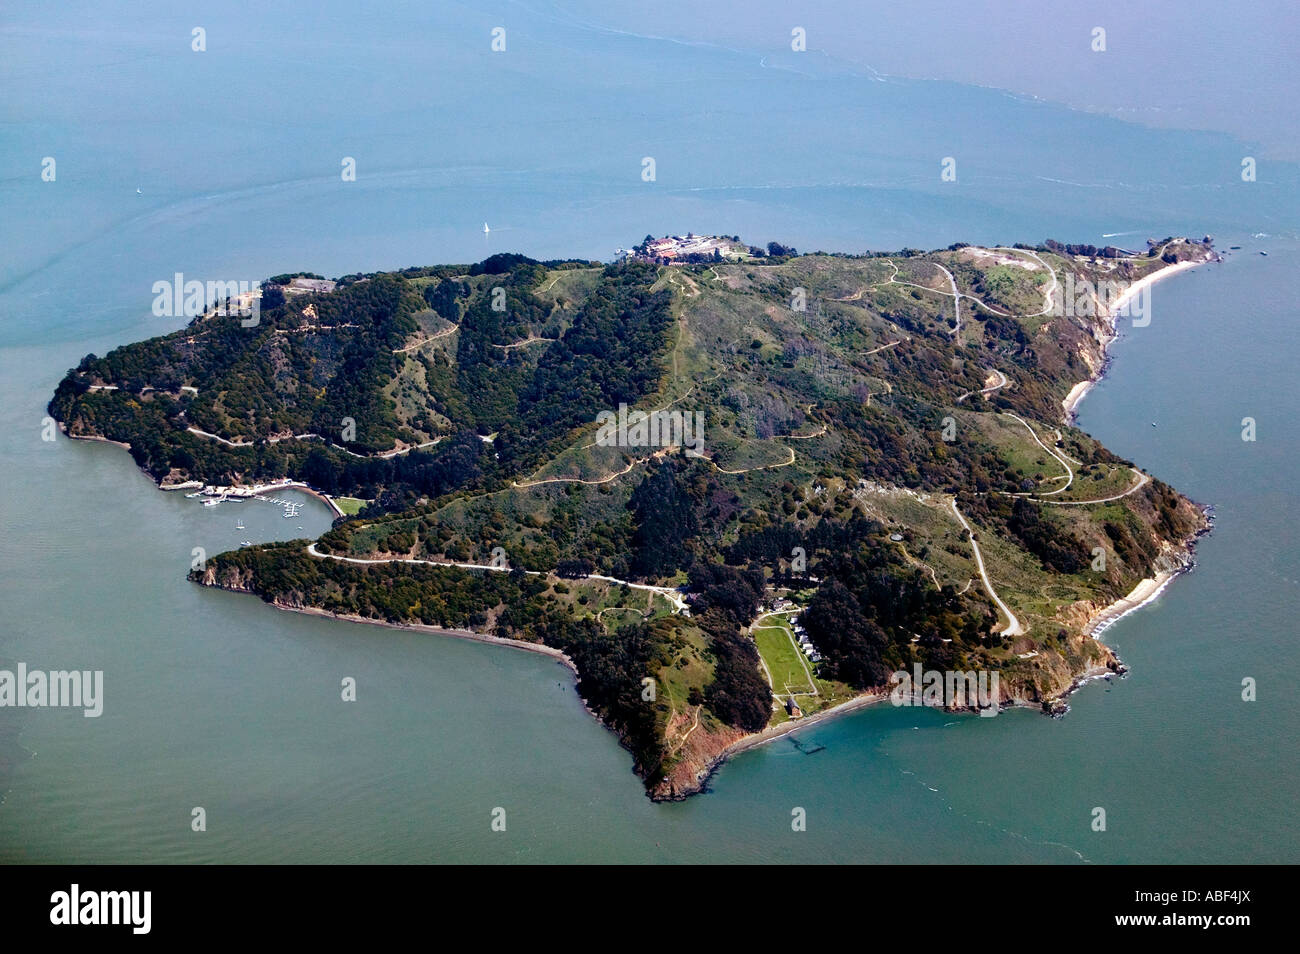 map marin county ca with Stock Photo Aerial View Above Angel Island State Park San Francisco Bay California 12874849 on Detail 2018 Honda Cr v Touring awd New 17620339 as well The 10 Most Beautiful Towns In Northern California also Sonoma County Fair Grounds Santa Rosa Ca likewise 2402 together with Stock Photo Aerial View Above Angel Island State Park San Francisco Bay California 12874849.